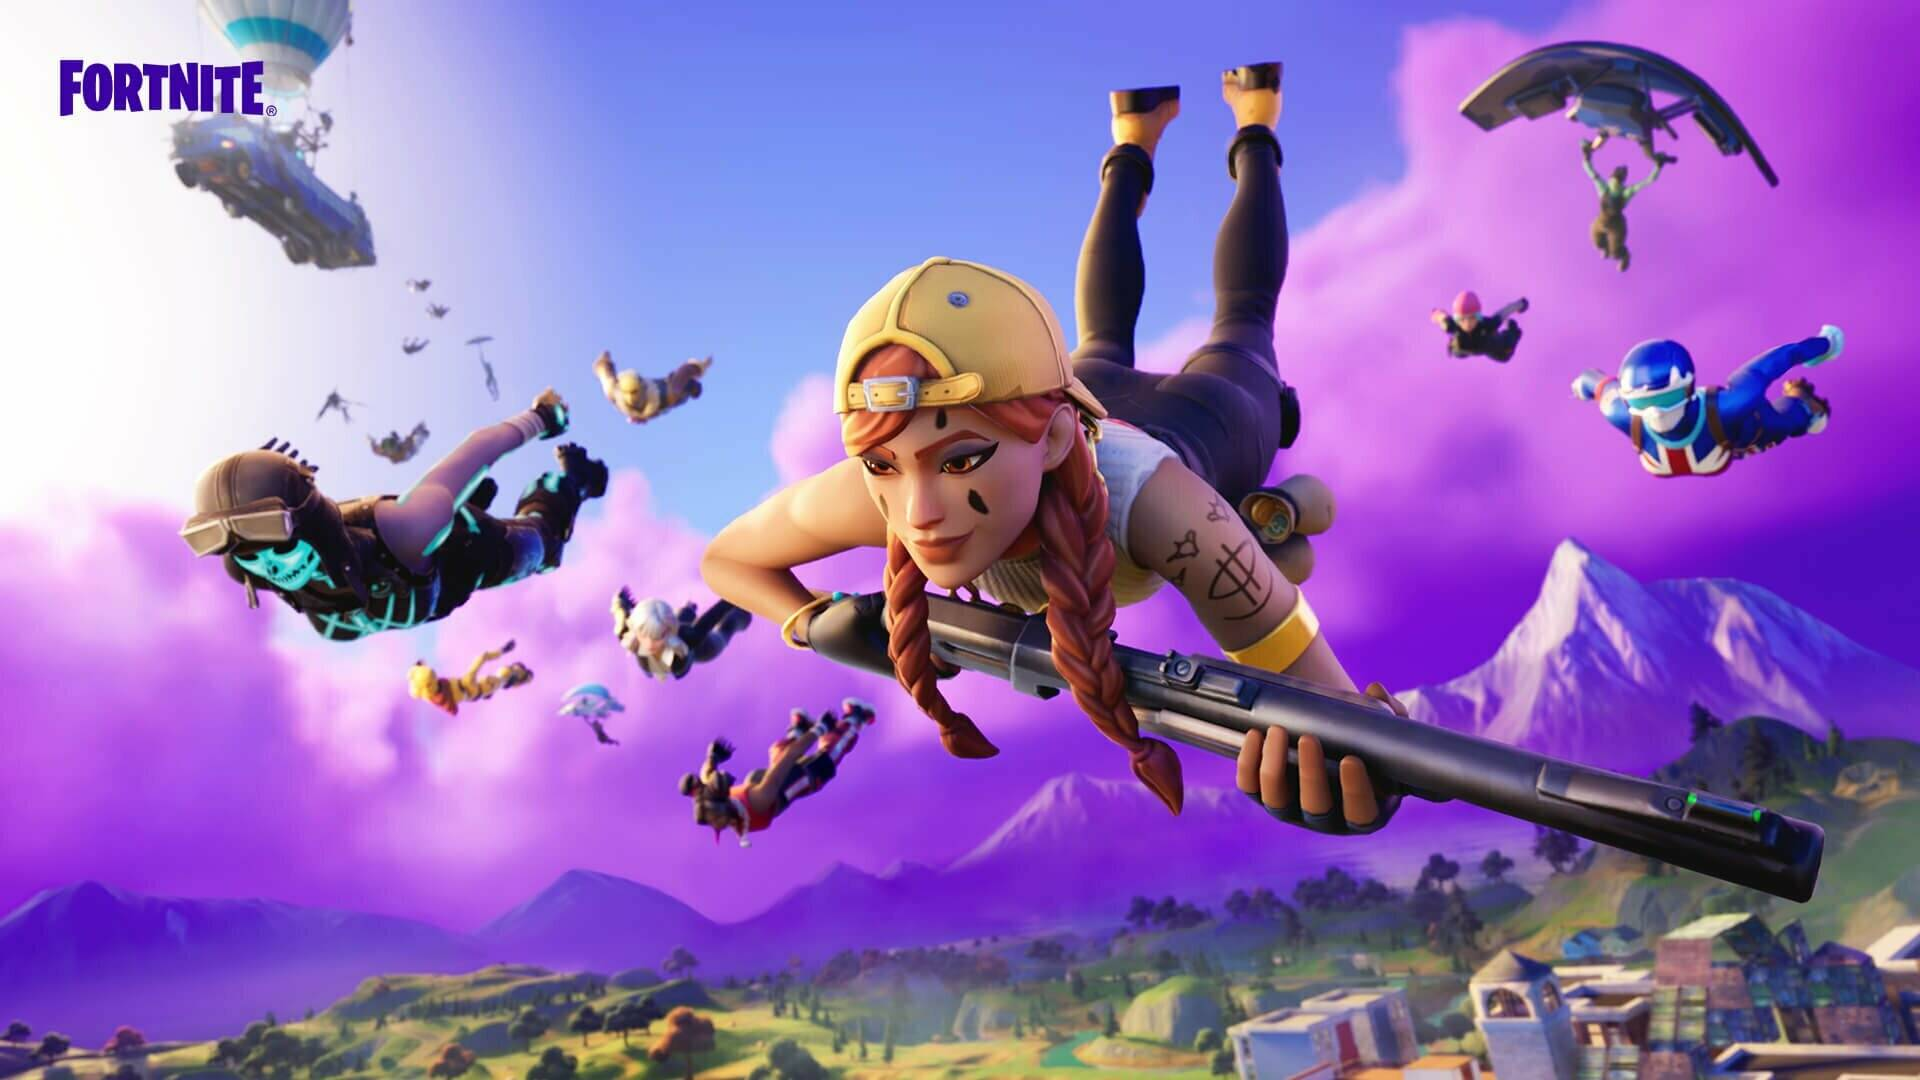 Will Fortnite Season 8 see a welcome and iconic return (from Chapter 1)?